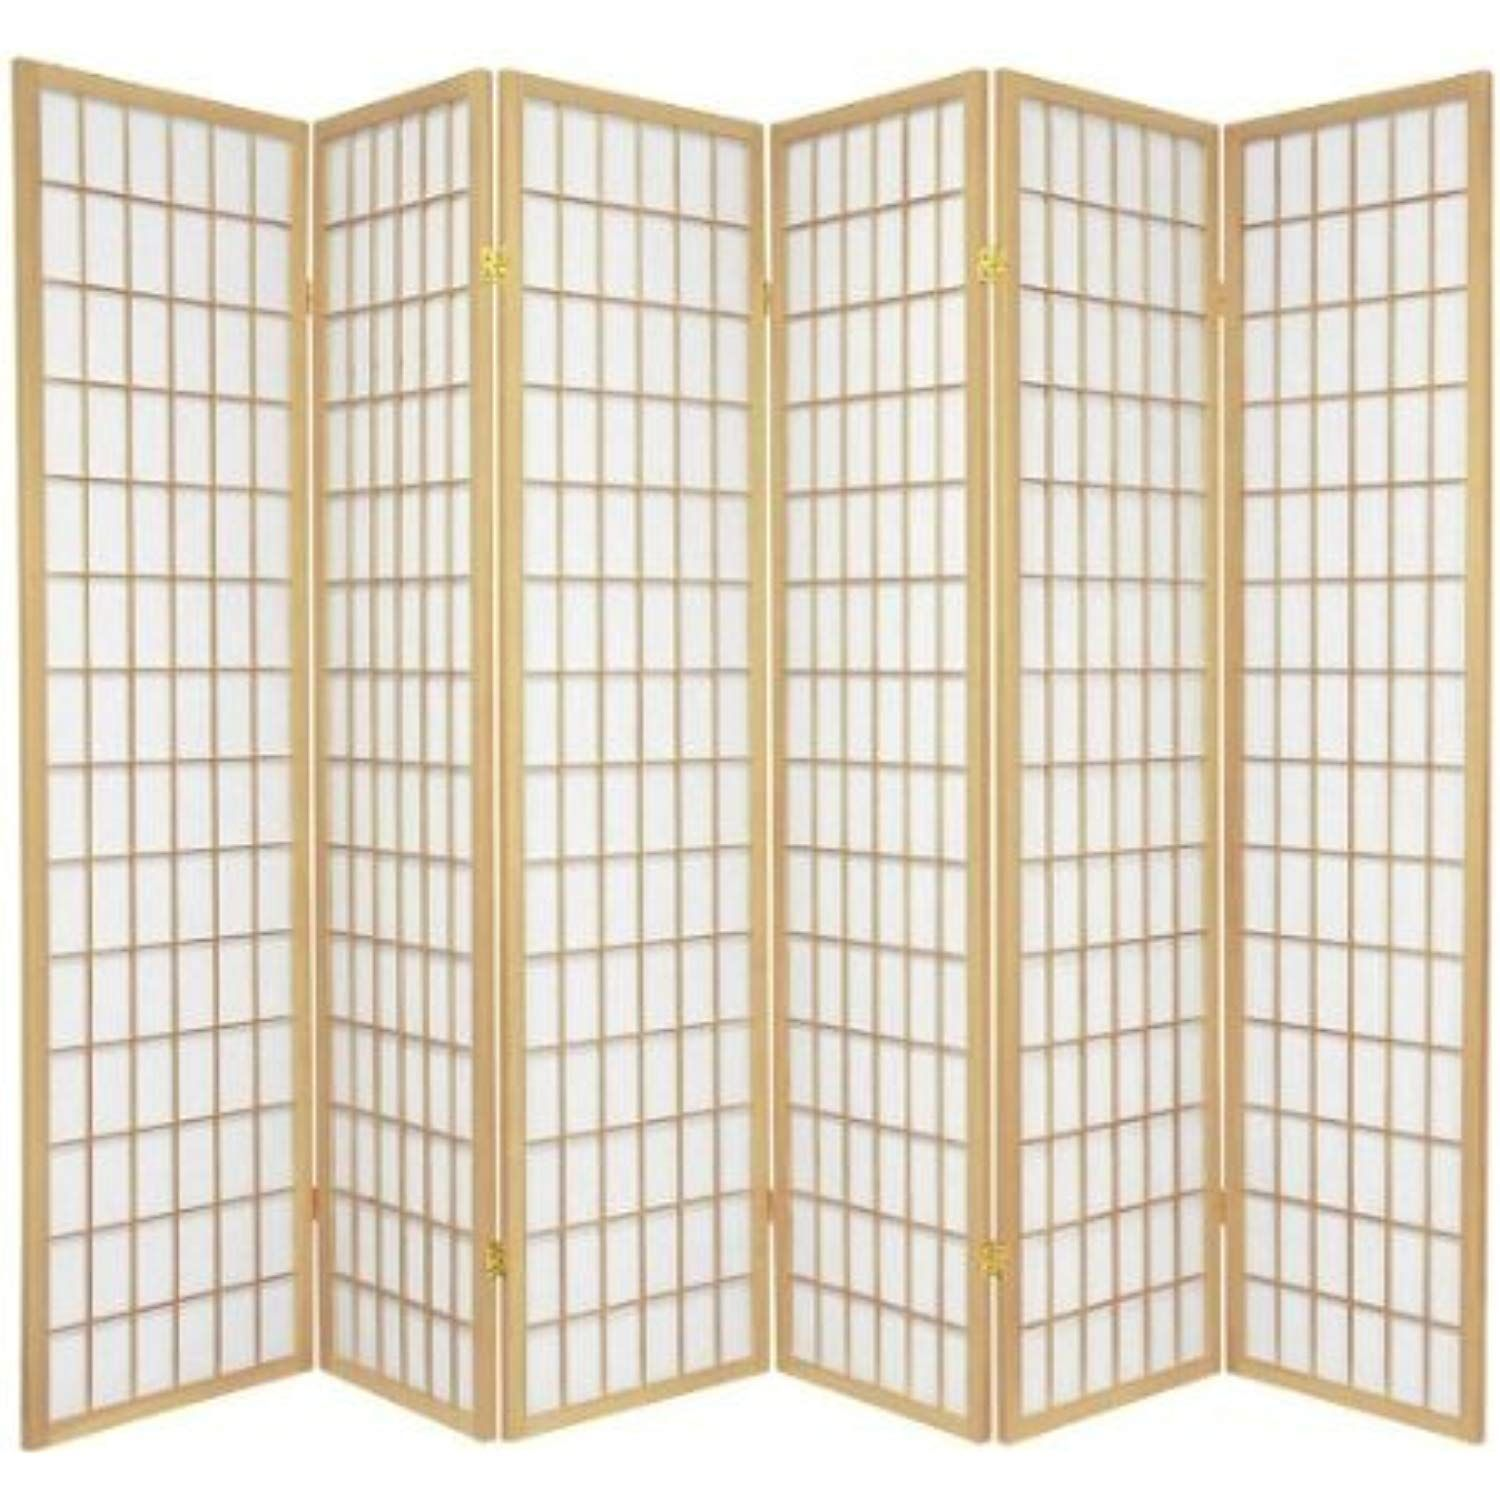 Legacy Decor 6 Panel Japanese Oriental Style Room Screen Divider Natural Color Click Image For Mo Shoji Screen Room Divider Shoji Screen Panel Room Divider